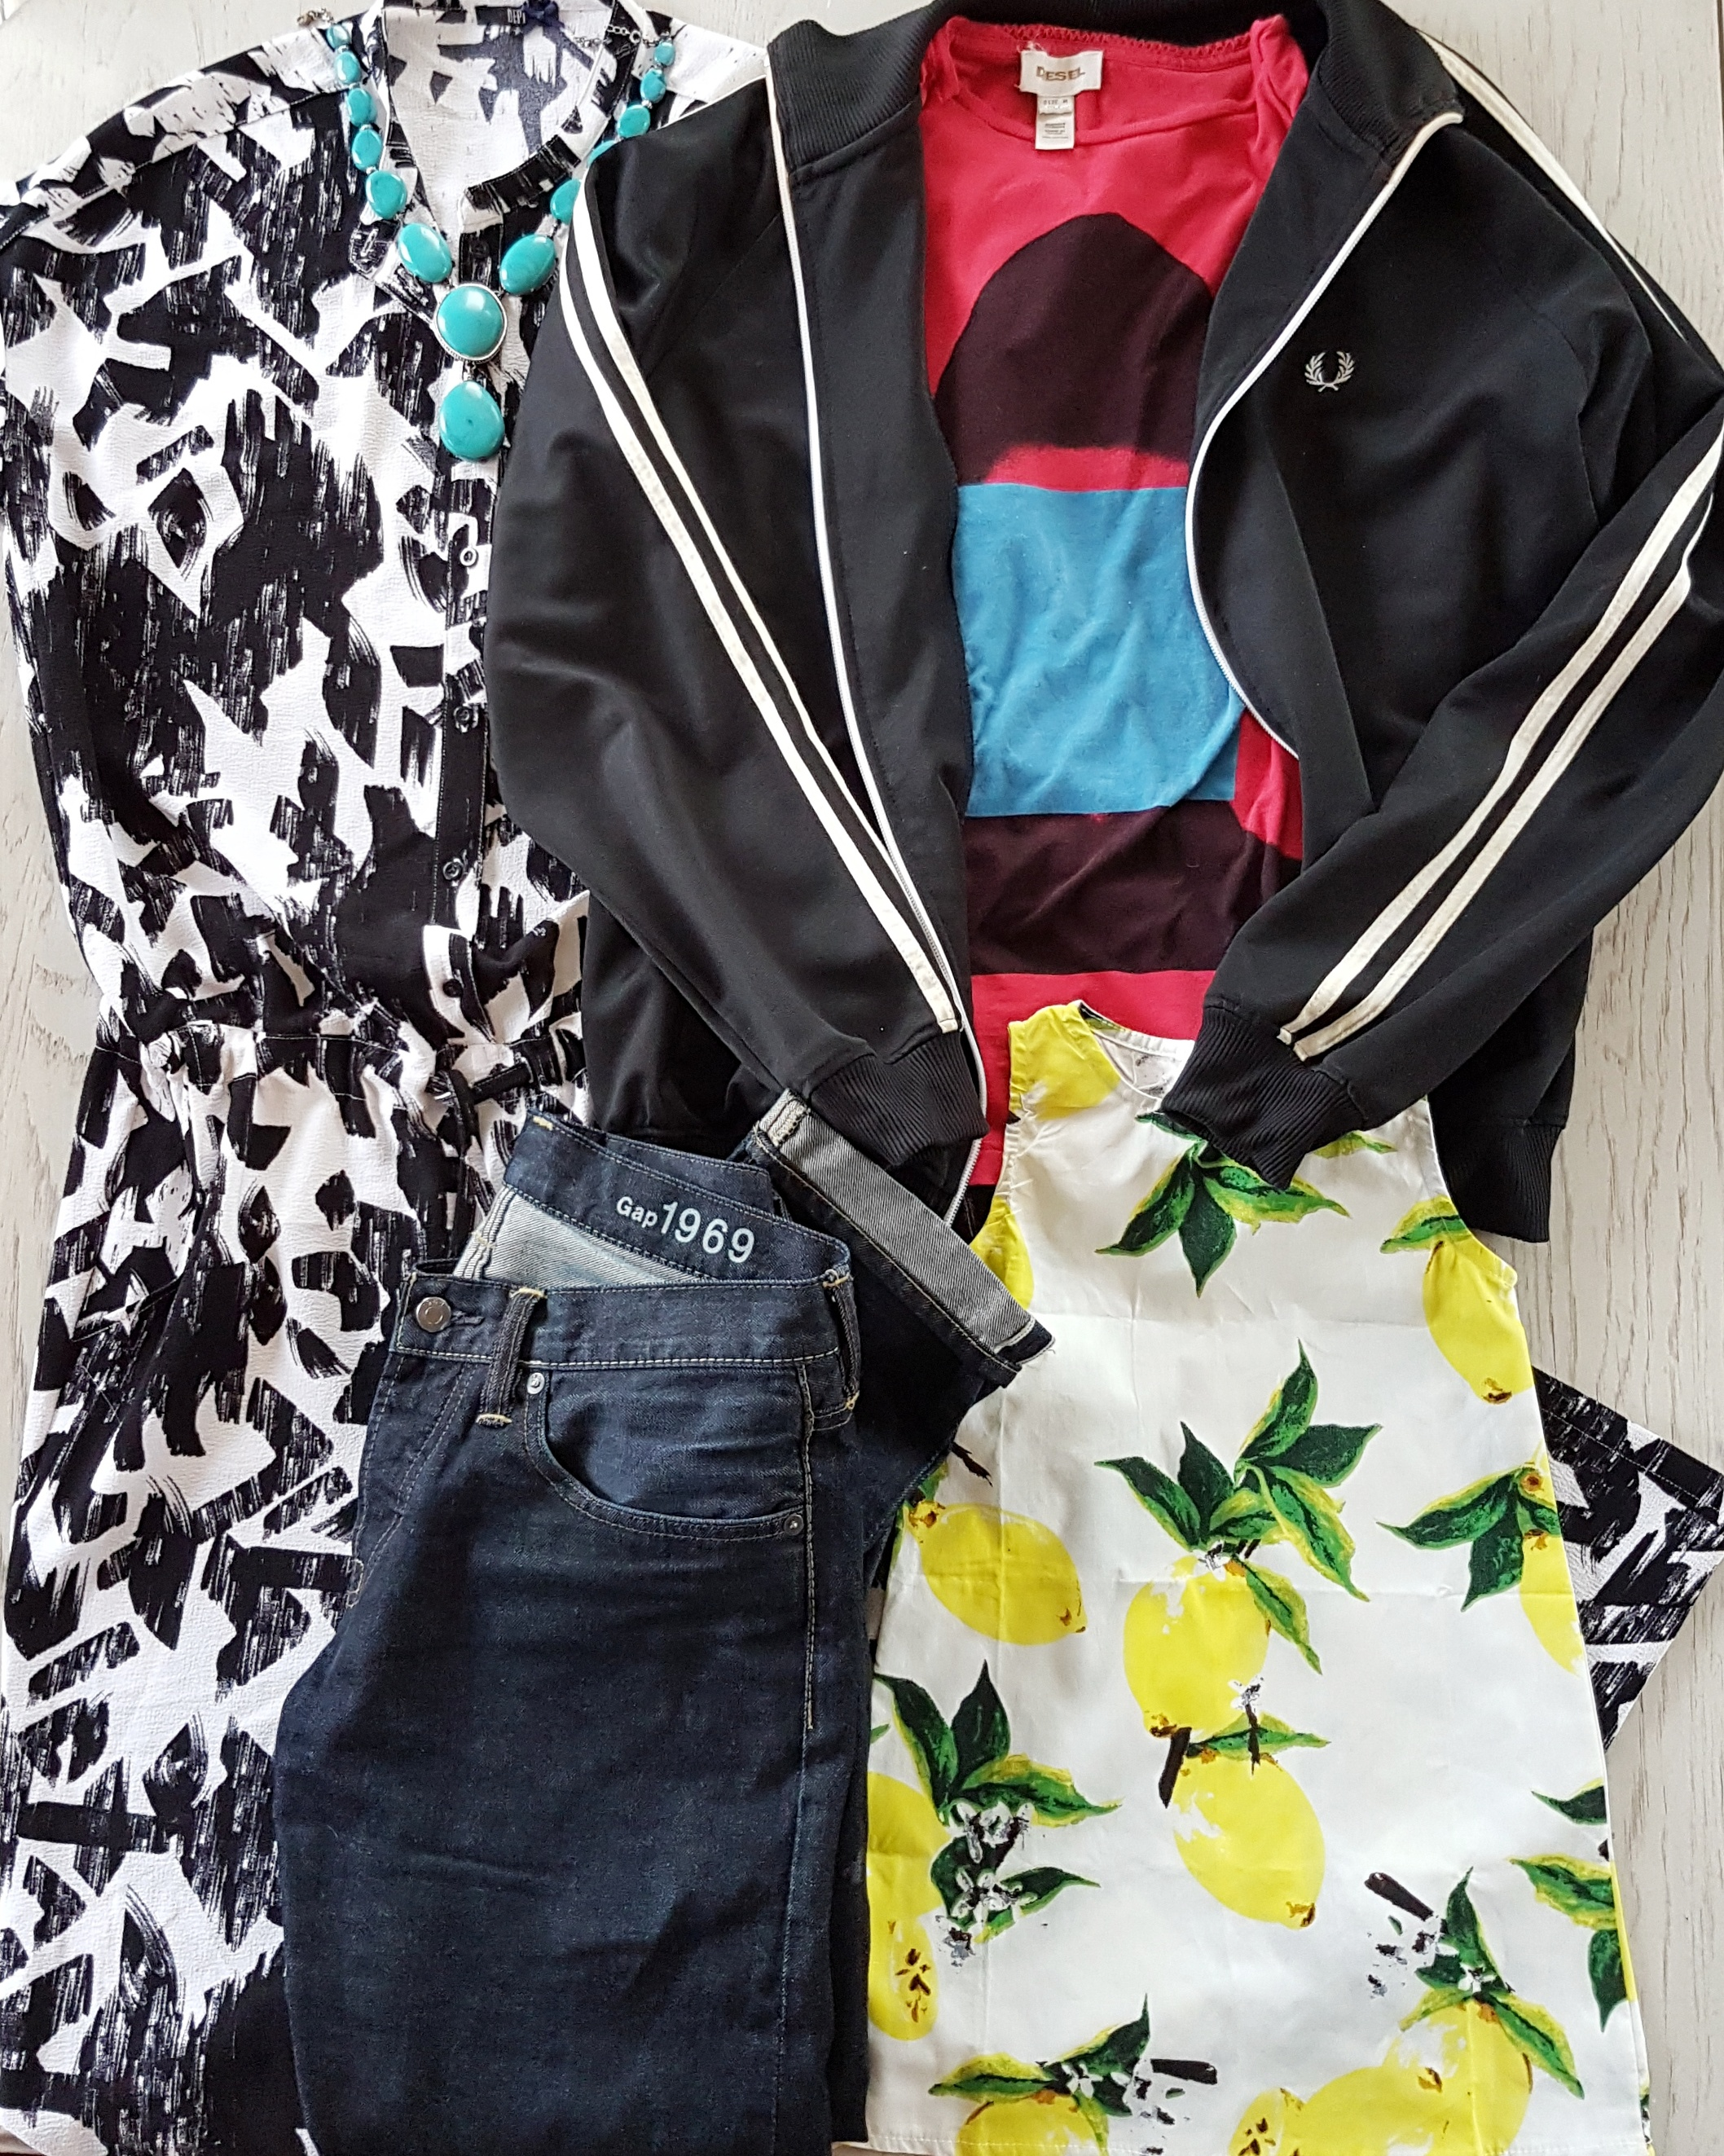 bold graphic style family photos outfit idea by maygen kardash